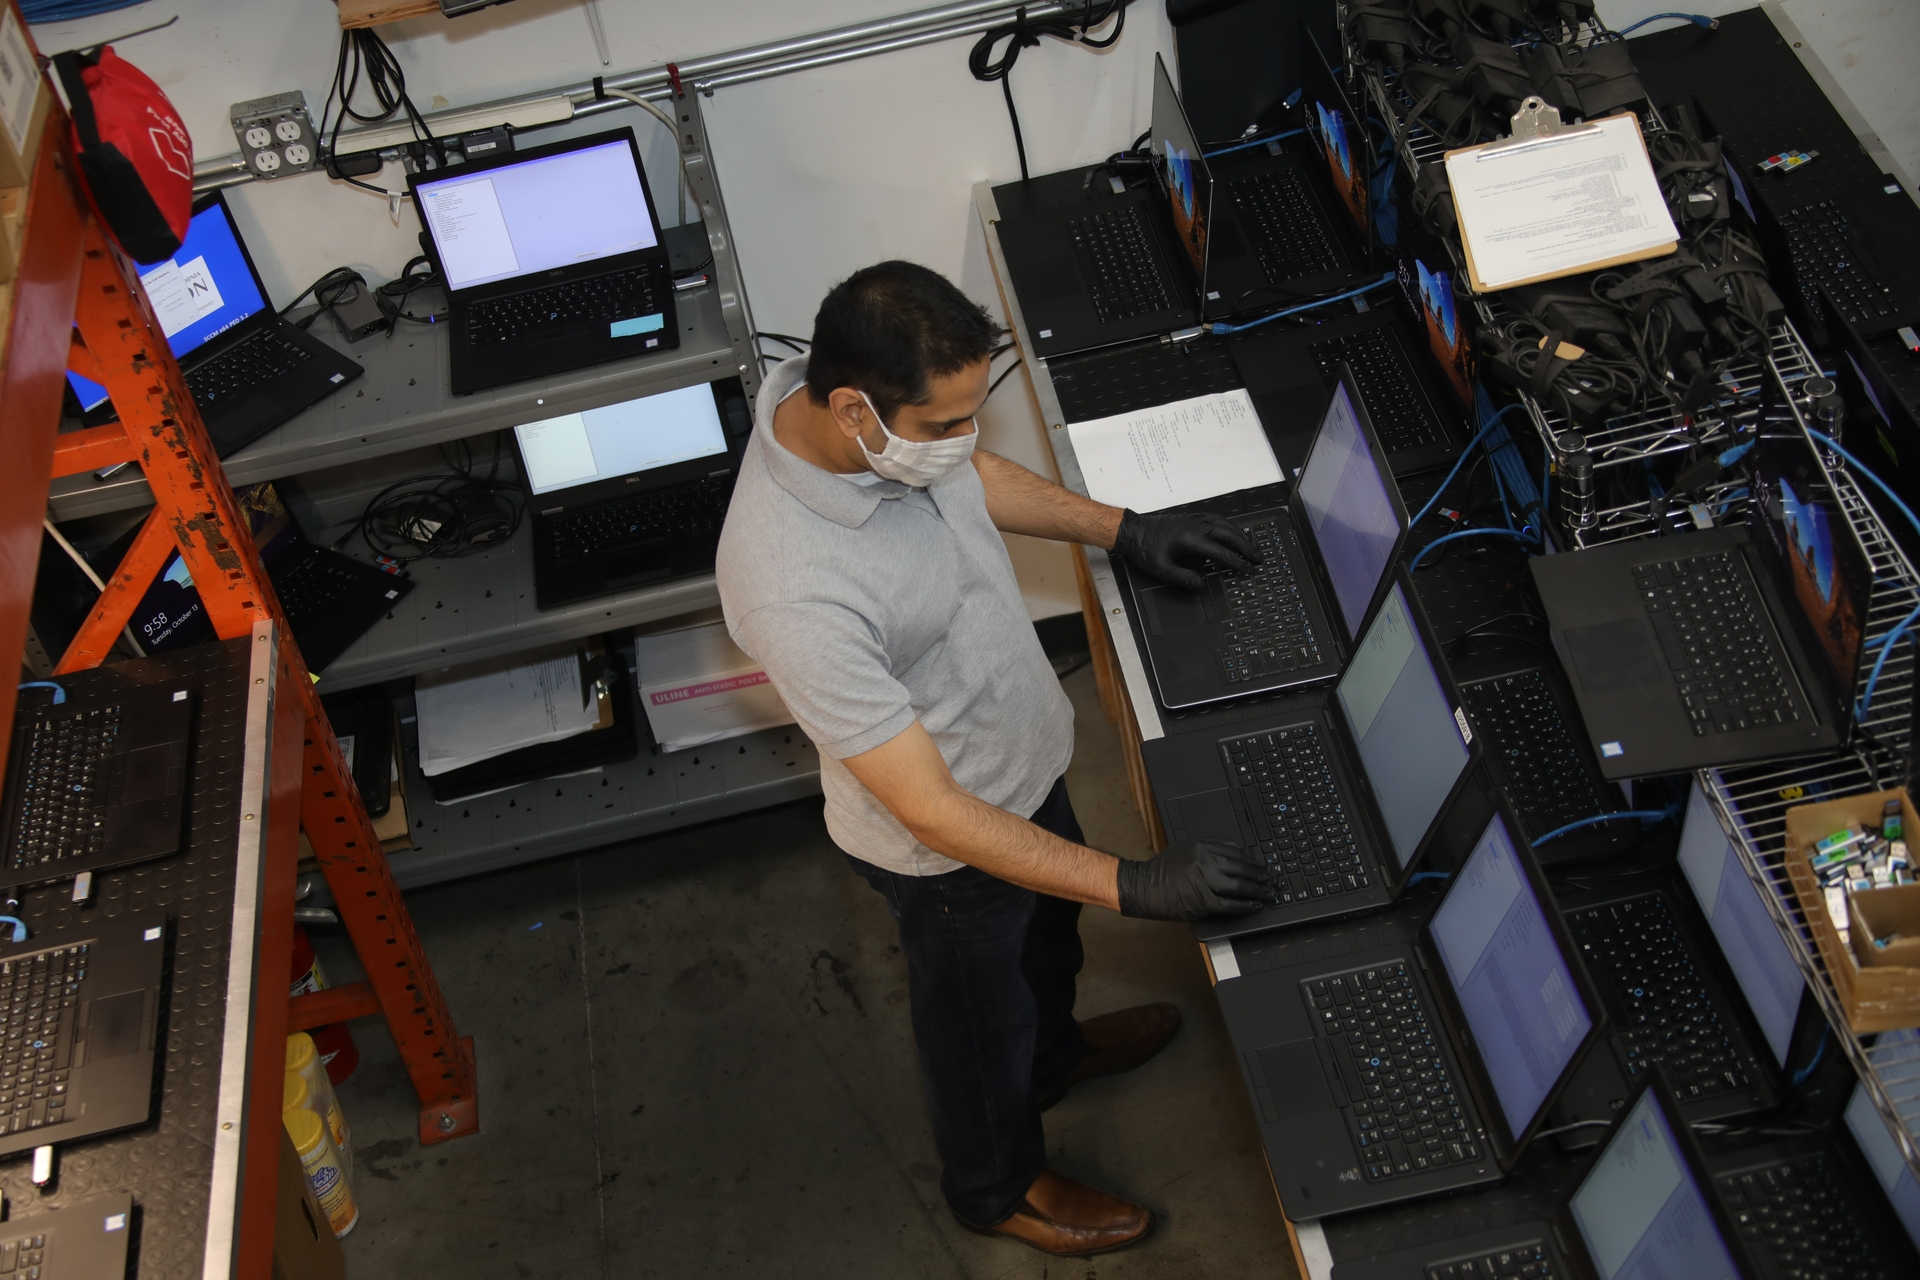 Sanjay Nangia, SCE principal manager in IT Operations, works on refurbished laptops.